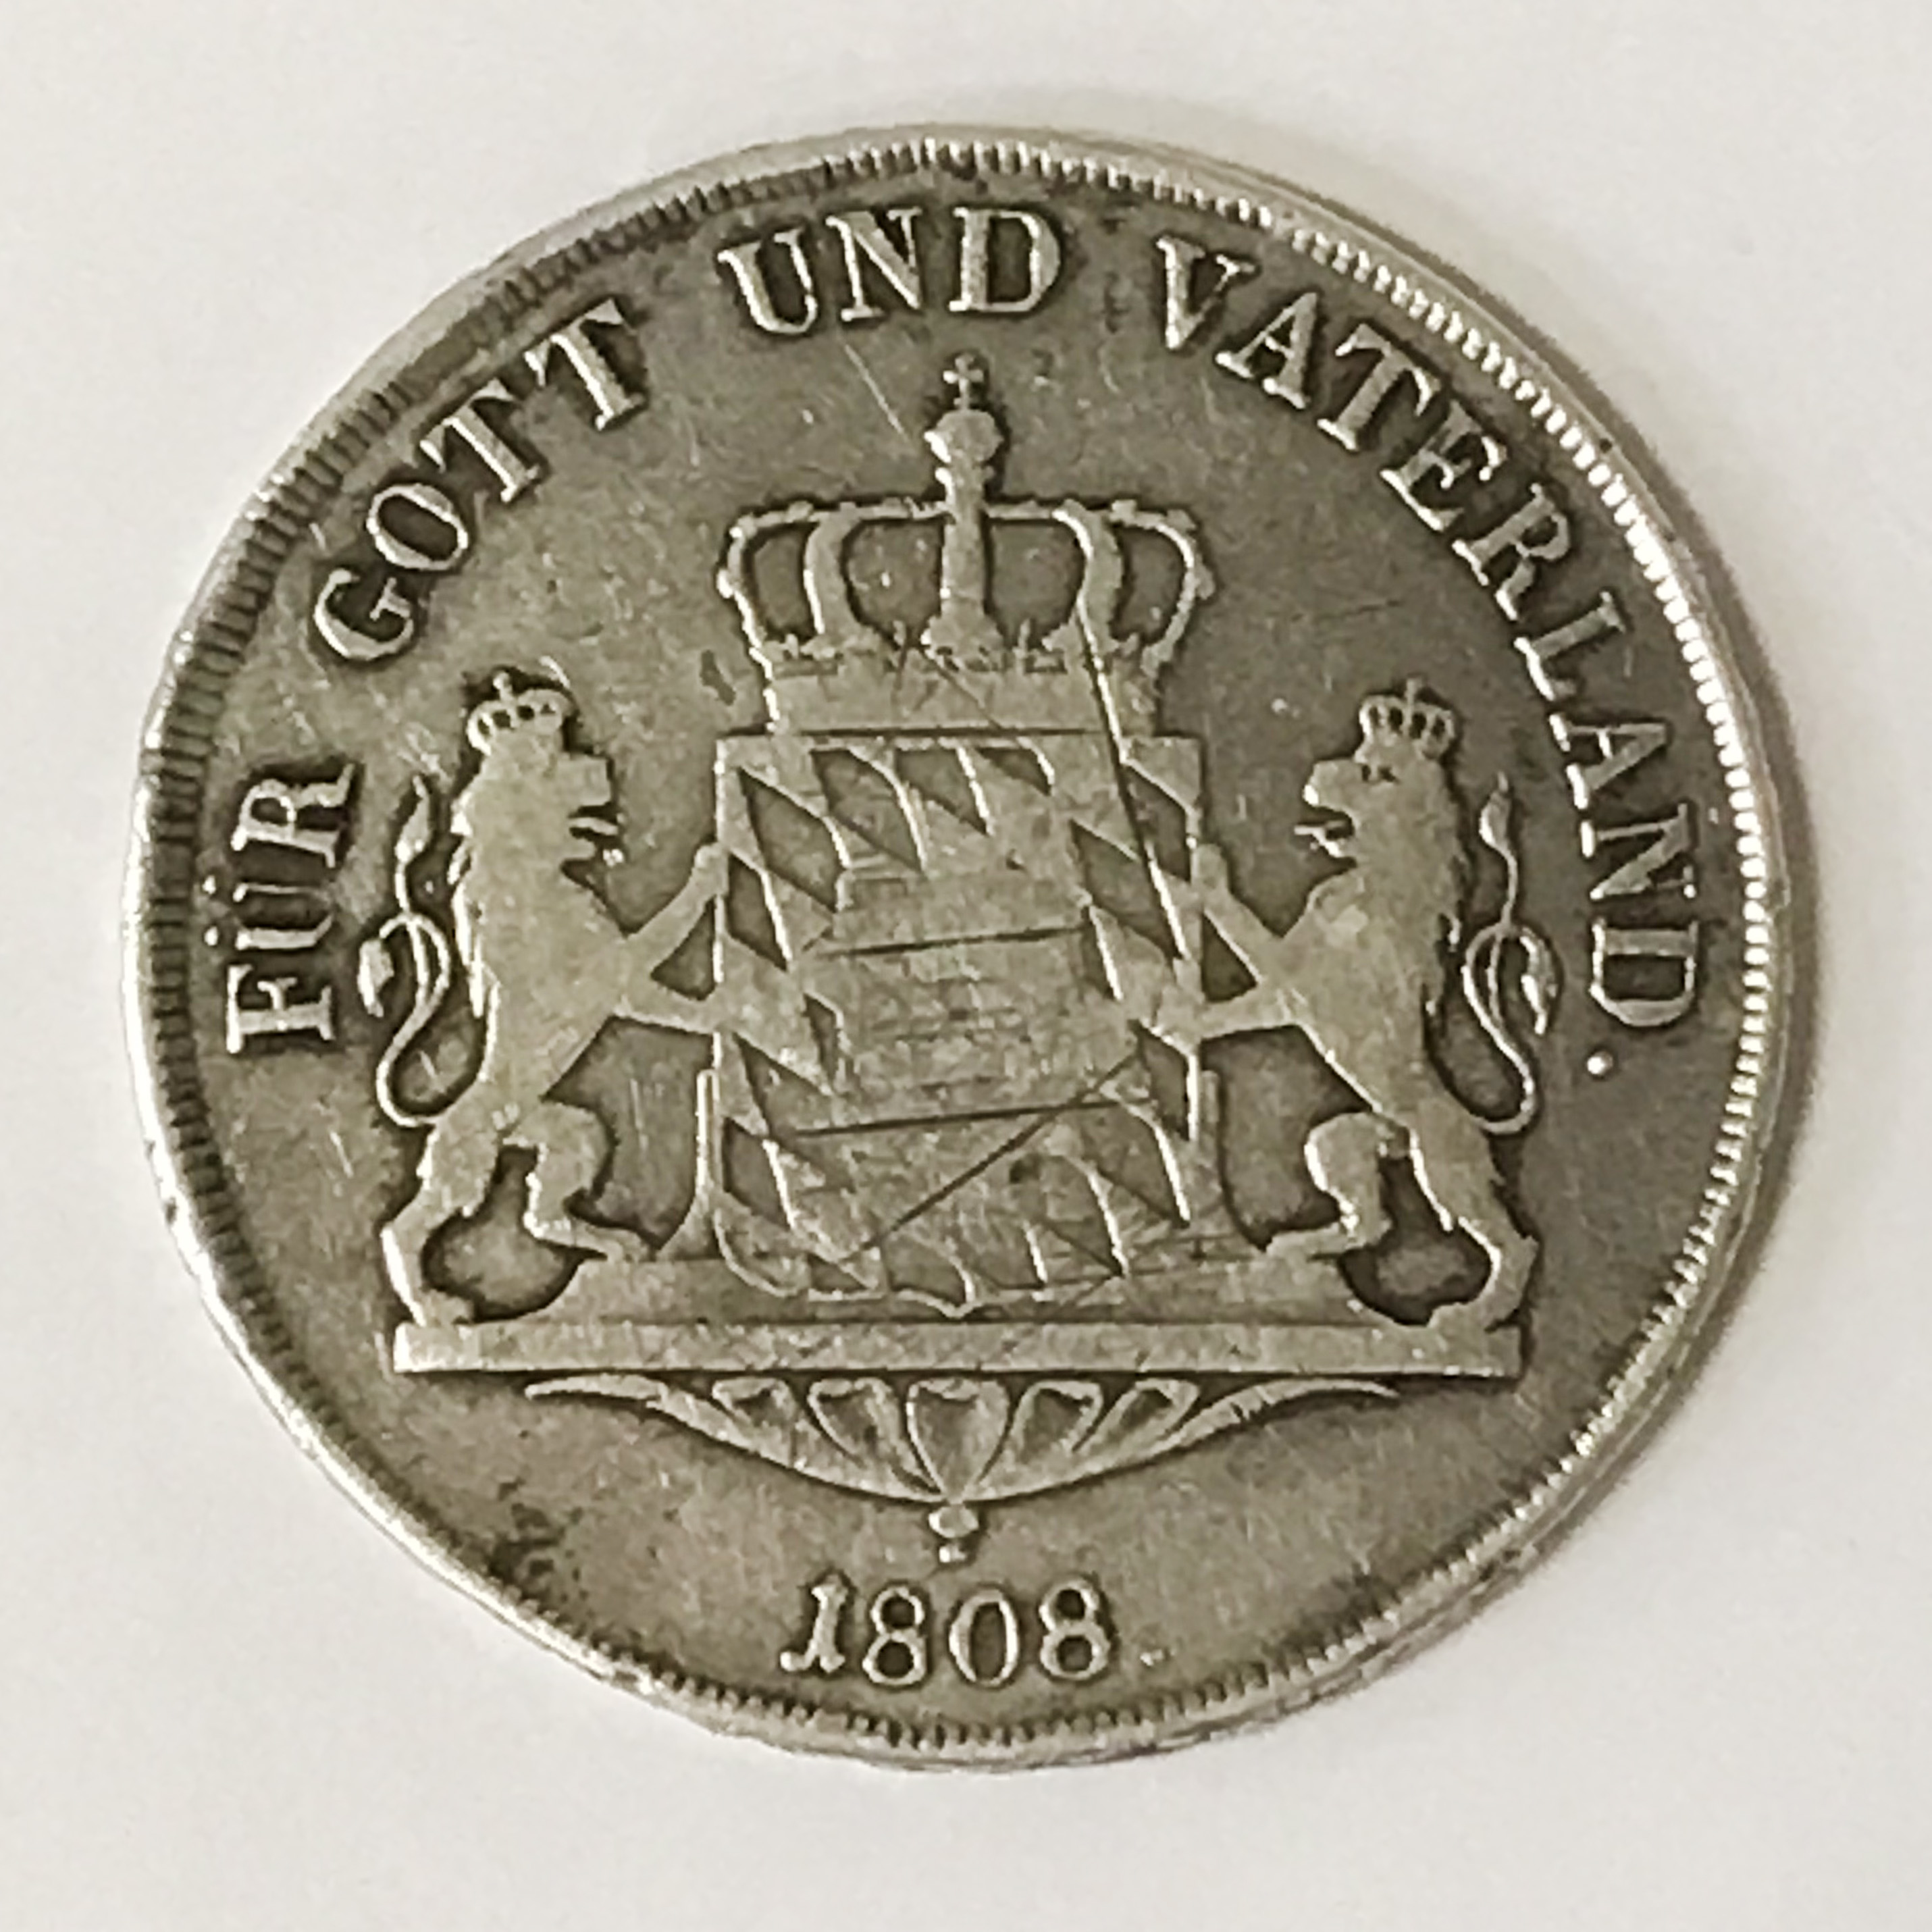 GERMAN SILVER COIN 1808 - Image 2 of 2